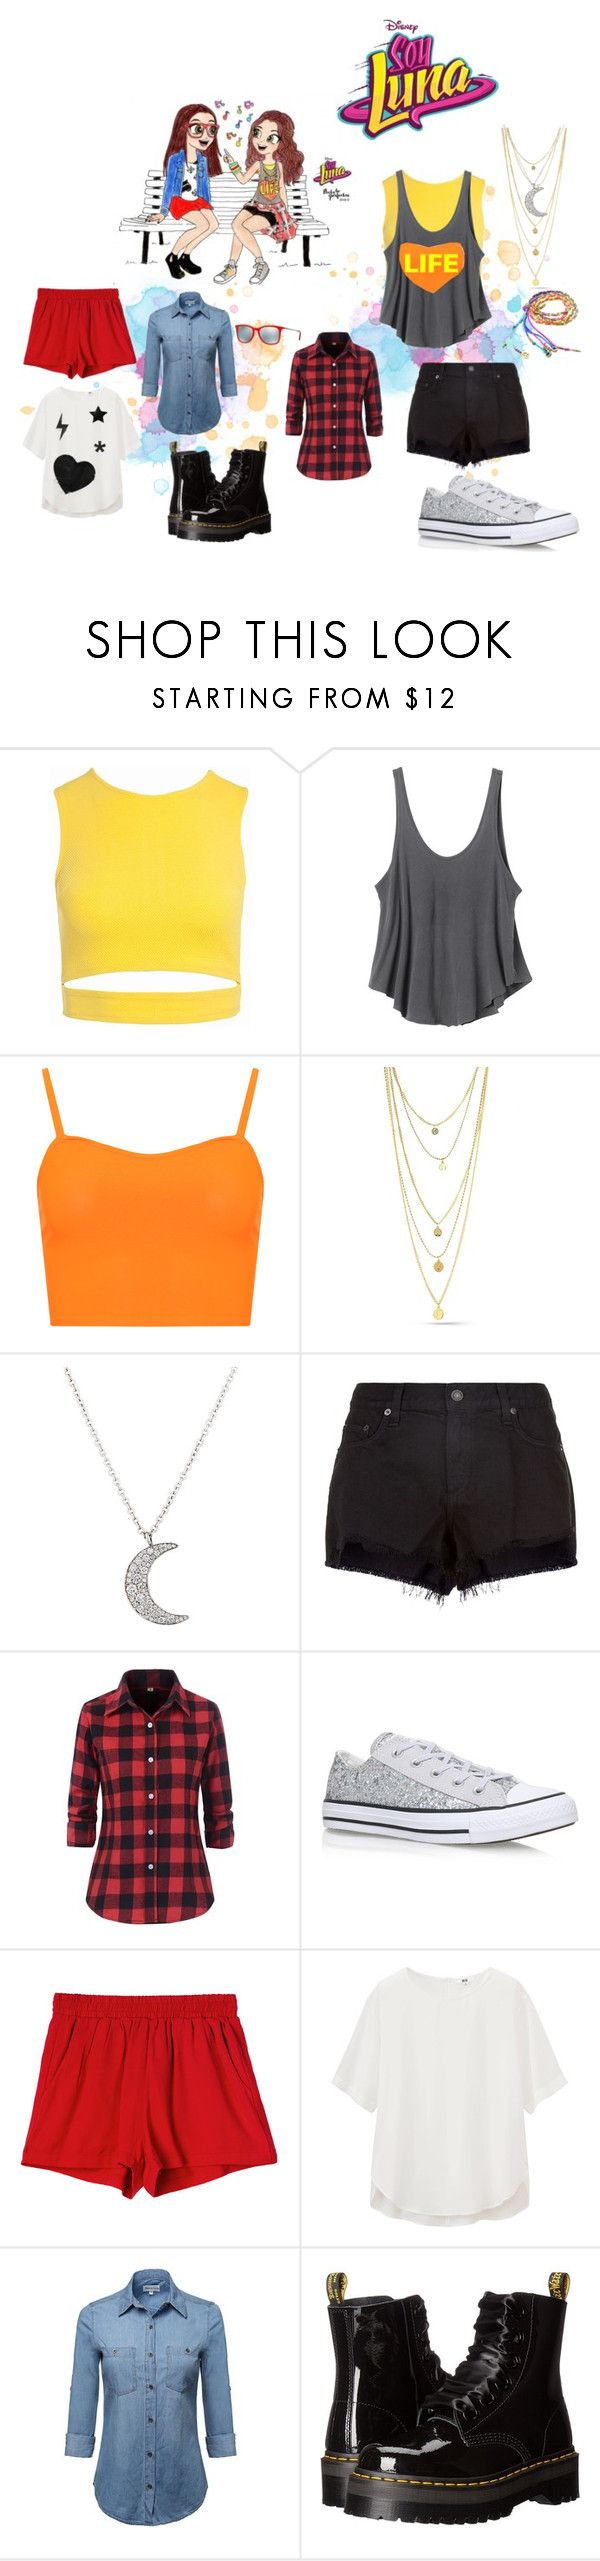 """""""soy luna"""" by maria-look on Polyvore featuring Sans Souci, RVCA, WearAll, Finn, rag & bone, Converse, Uniqlo, Dr. Martens and Ray-Ban"""